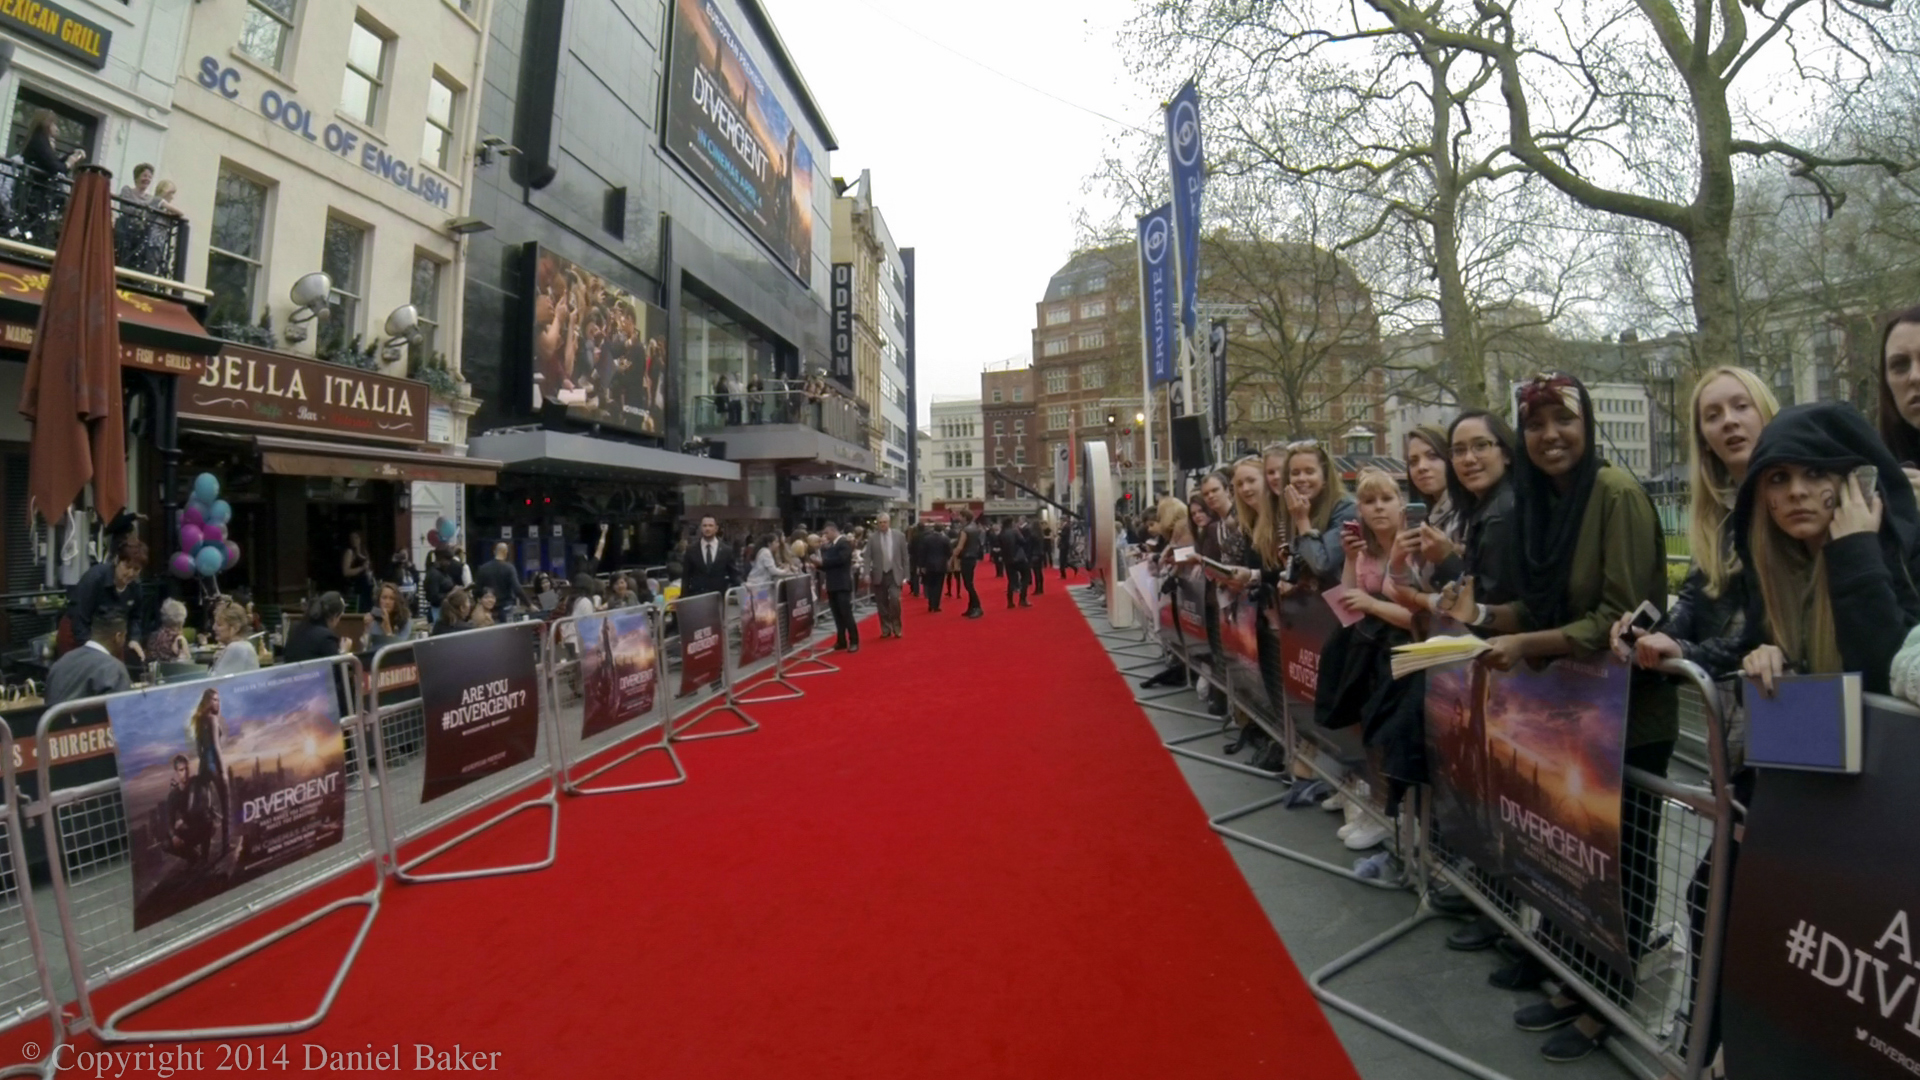 The Red carpet at the Divergent première in London